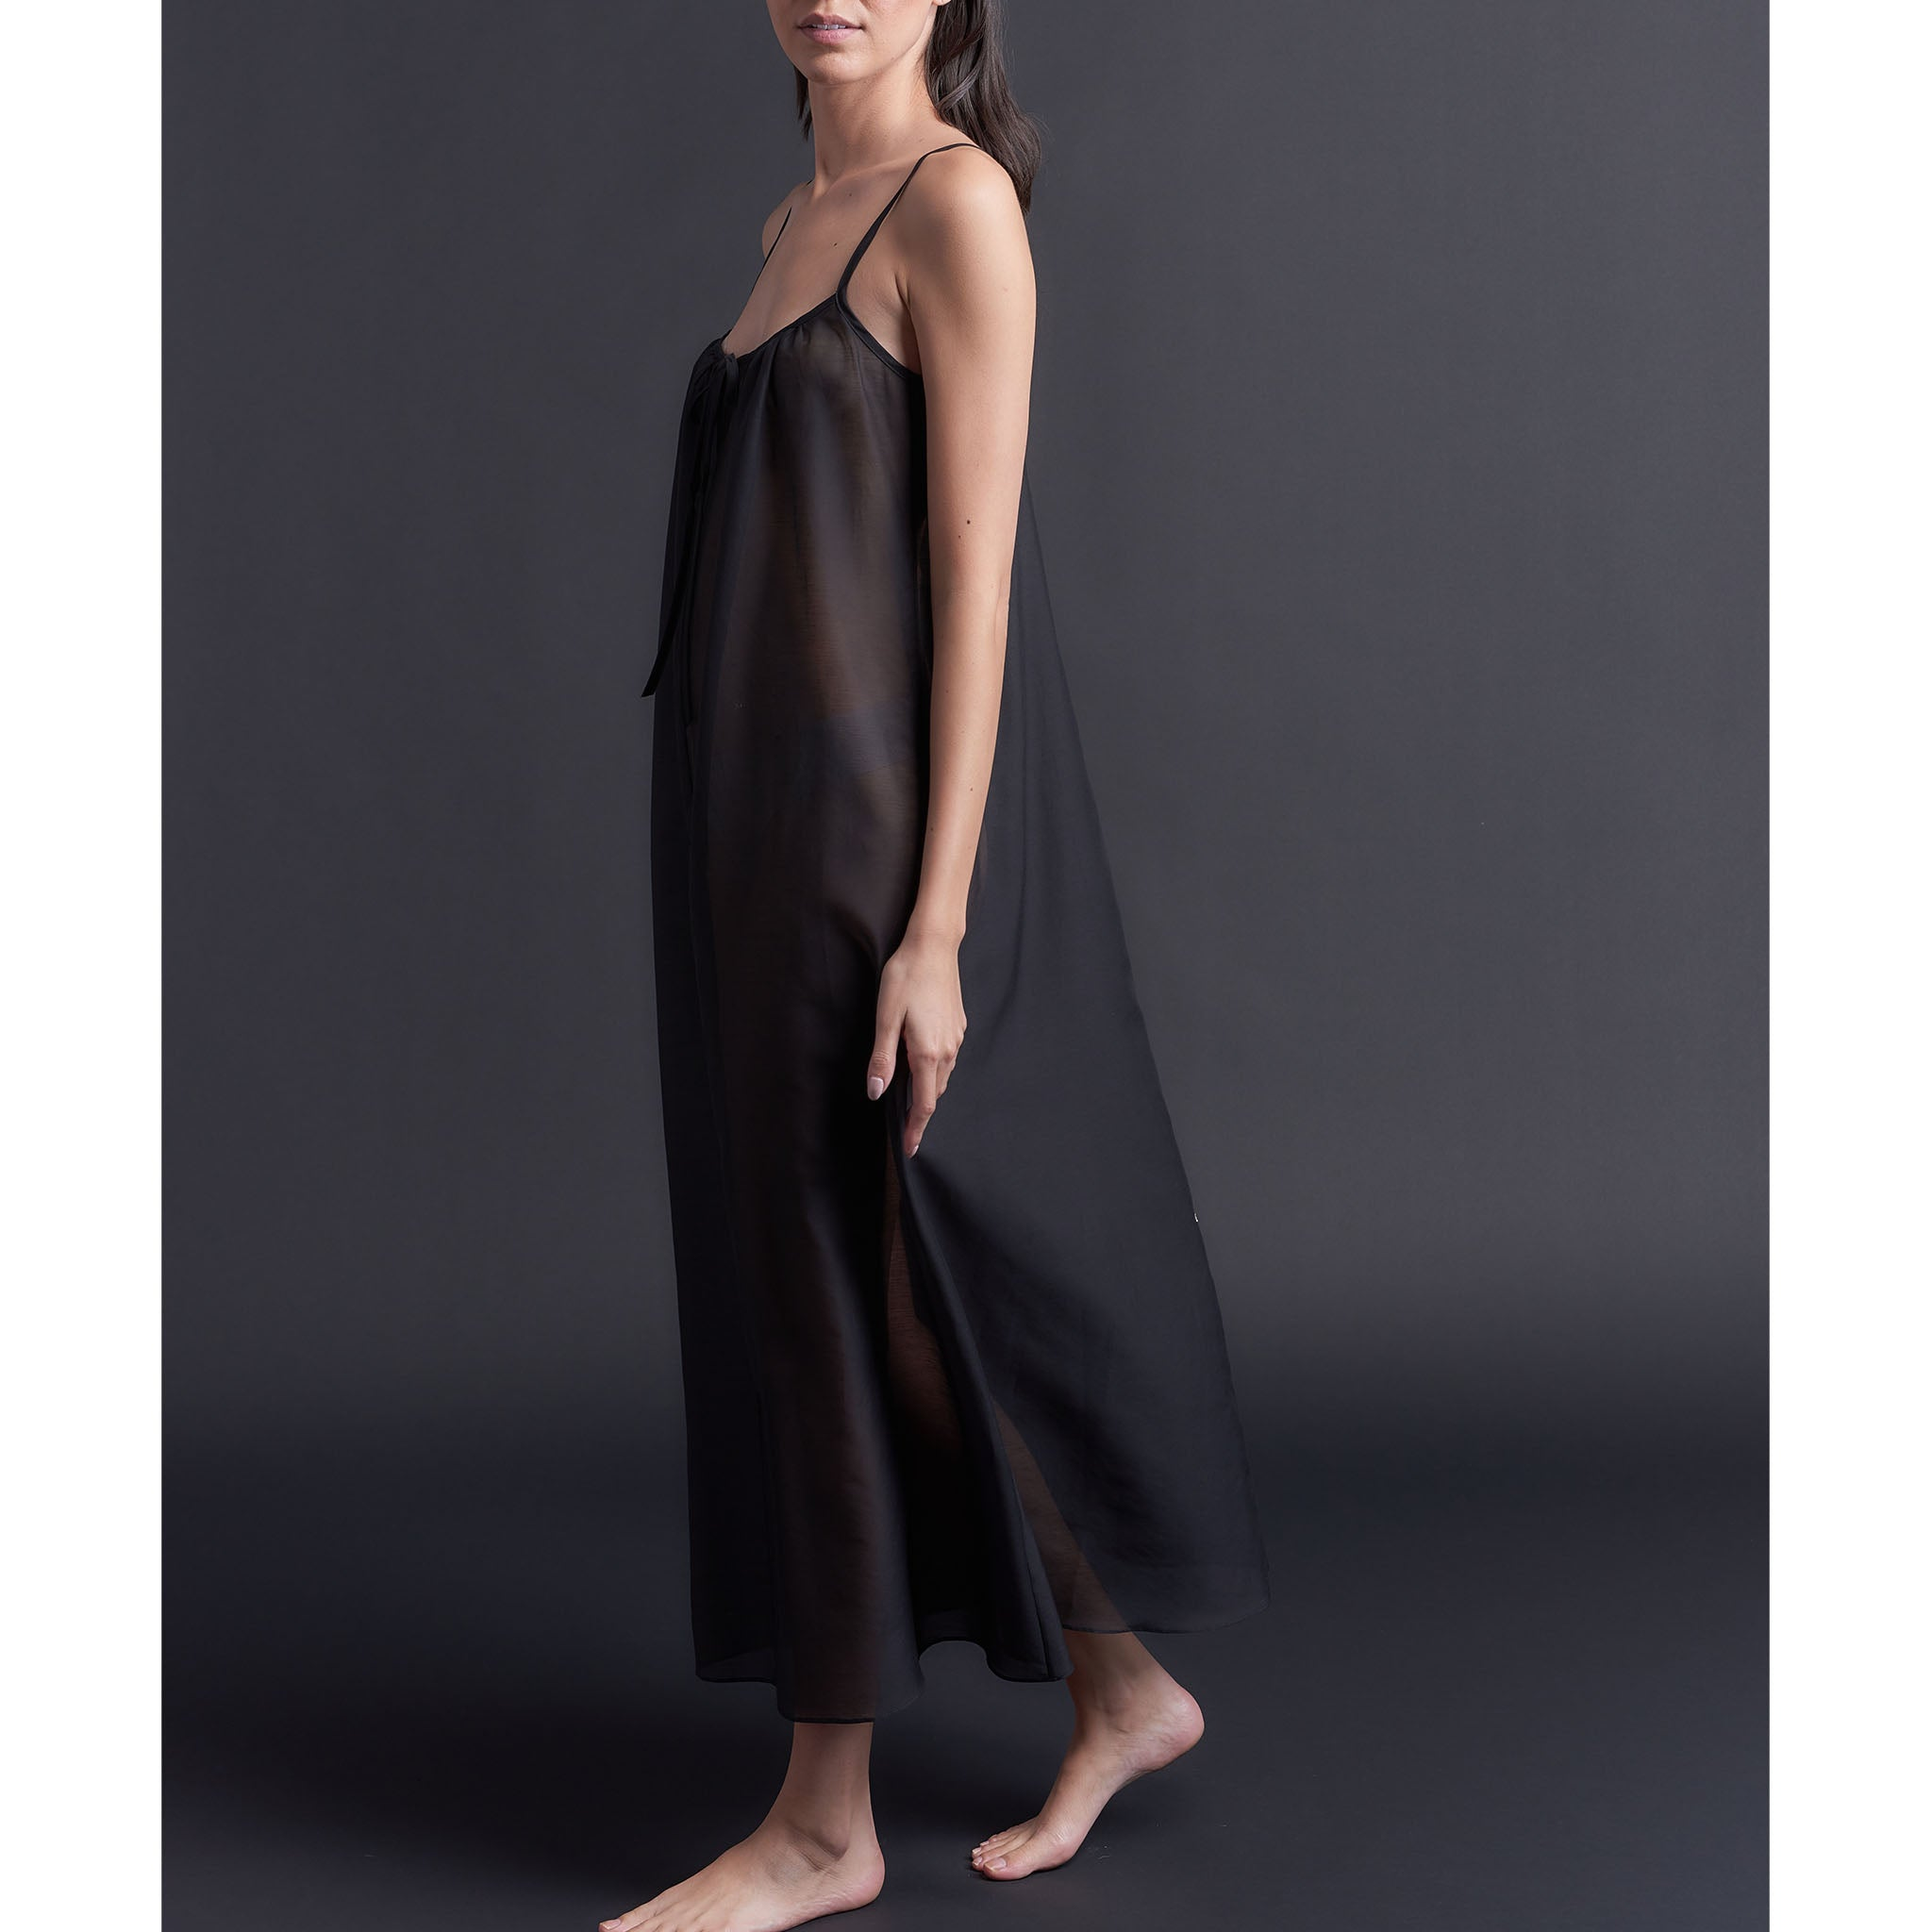 Thea Paneled Slip Dress in Black Silk Cotton Voile